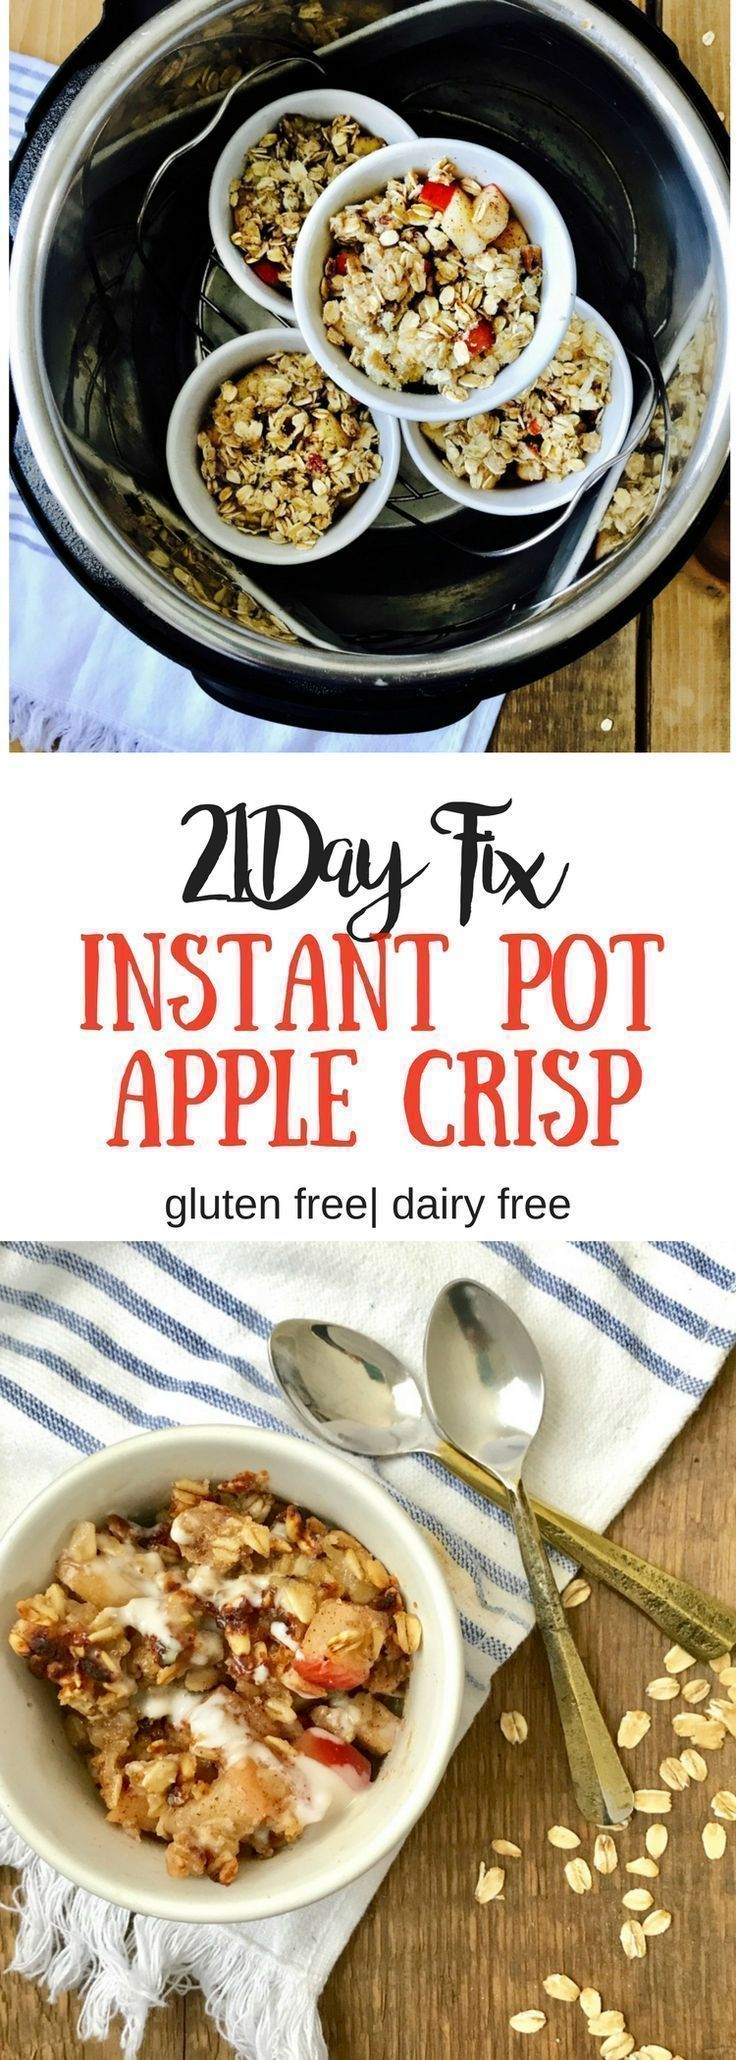 21 Day Fix Instant Pot Apple Crisp   Confessions of a Fit Foodie   A 21 Day Fix Dessert recipe for the entire family! Gluten Free Apple Crisp